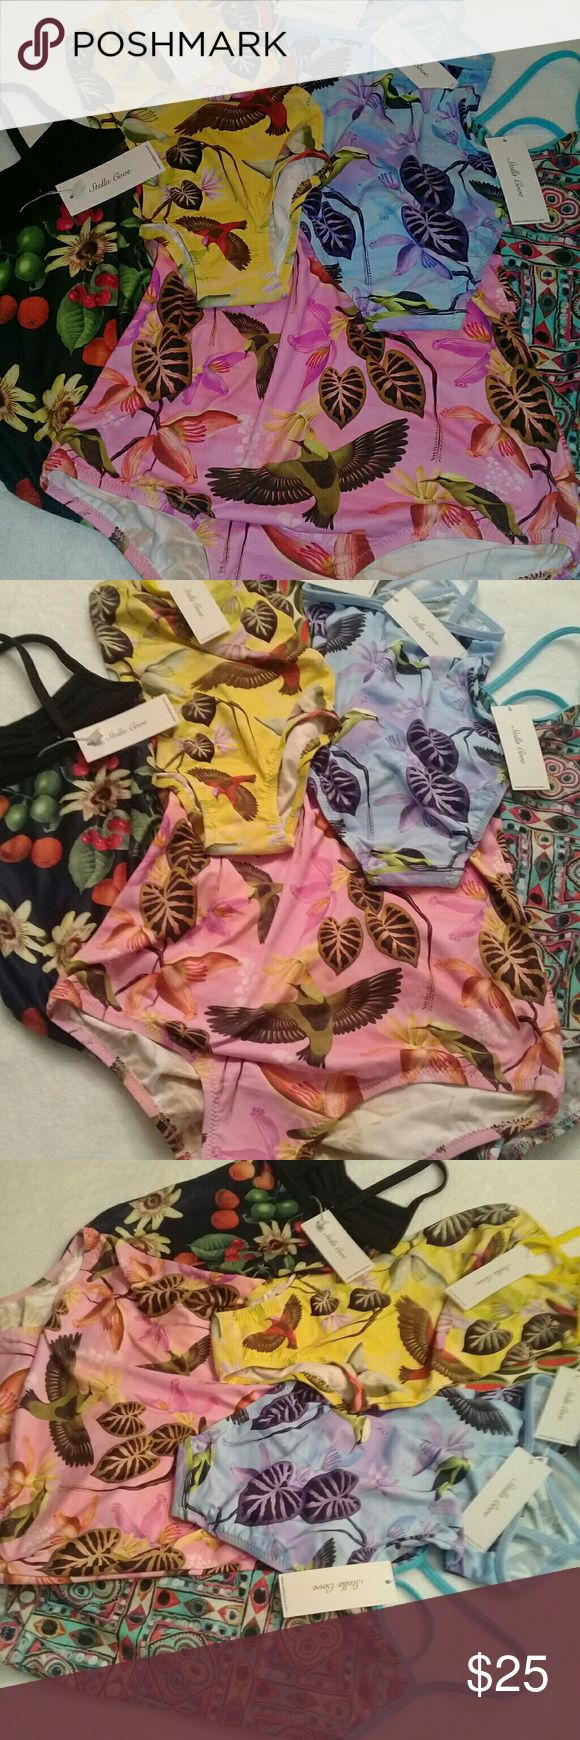 **STELLA COVE BATHING SUITS** ALL AGES. Very popular bathing suits as seen in Nordstrom and other high end department stores. Org.cost is $65. Al colors and sizes. BRAND NEW WITH TAGS. Stella Cove Swim One Piece